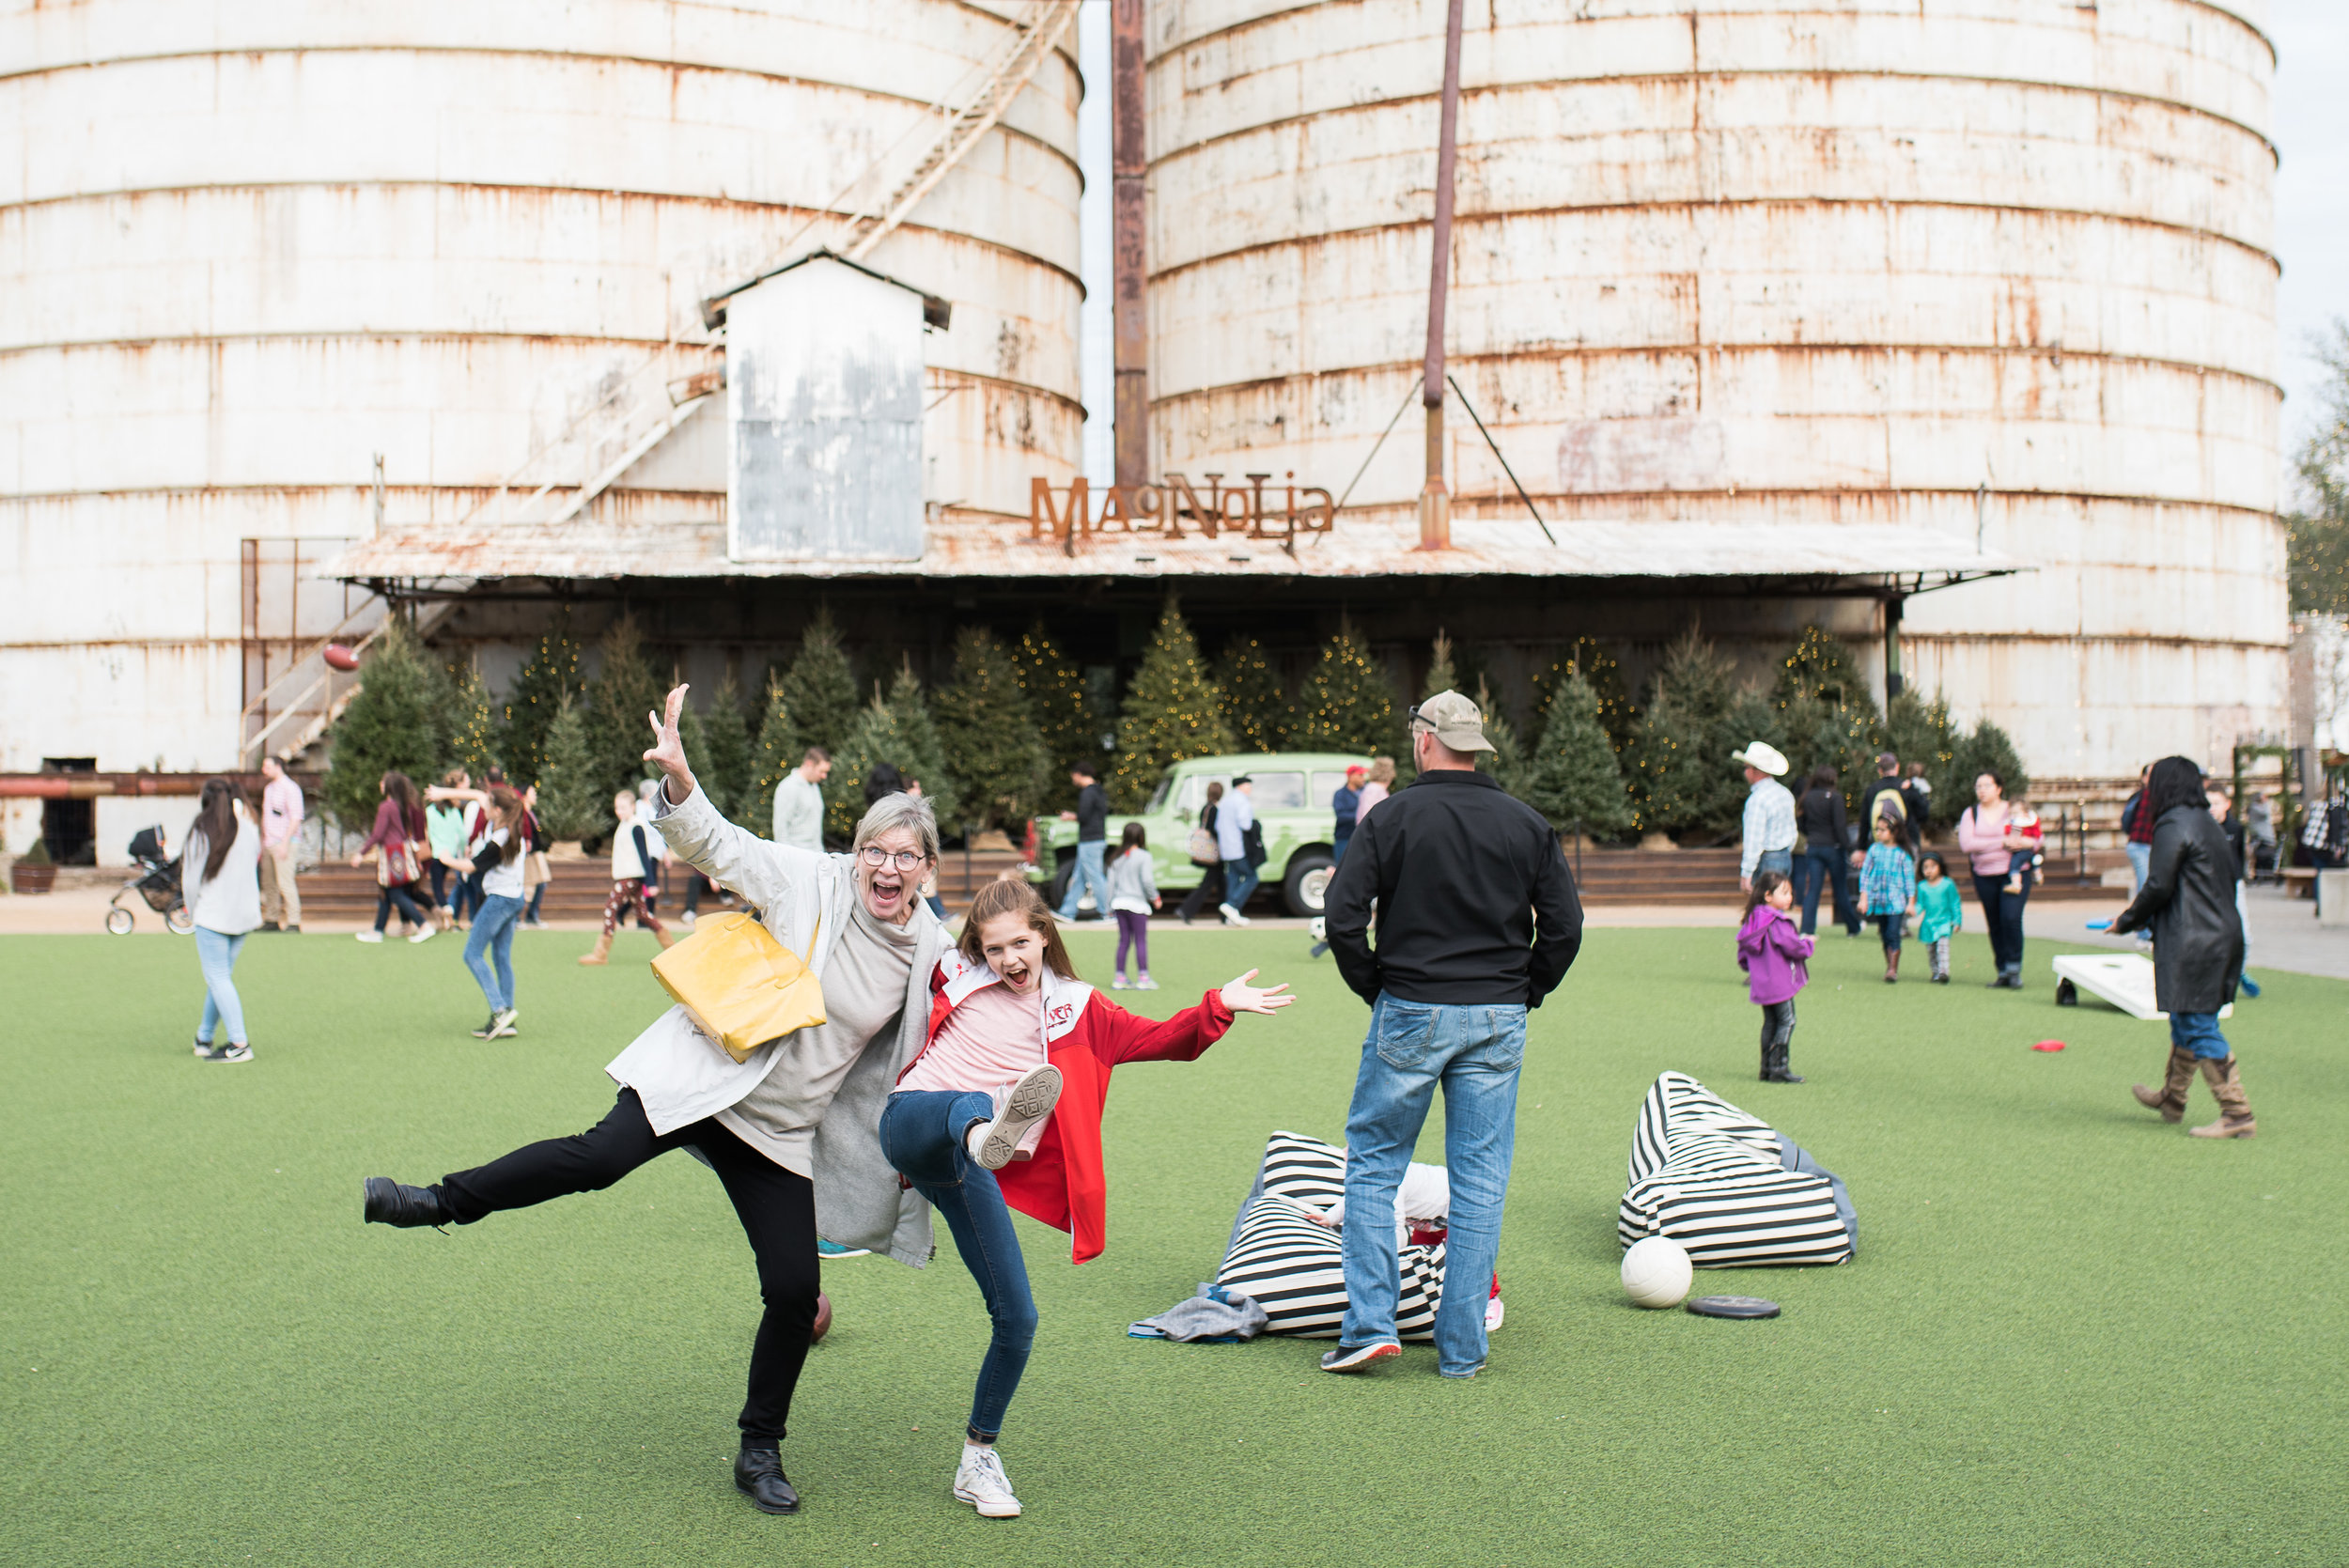 We had a ridiculously fun day, checking out the Silos.